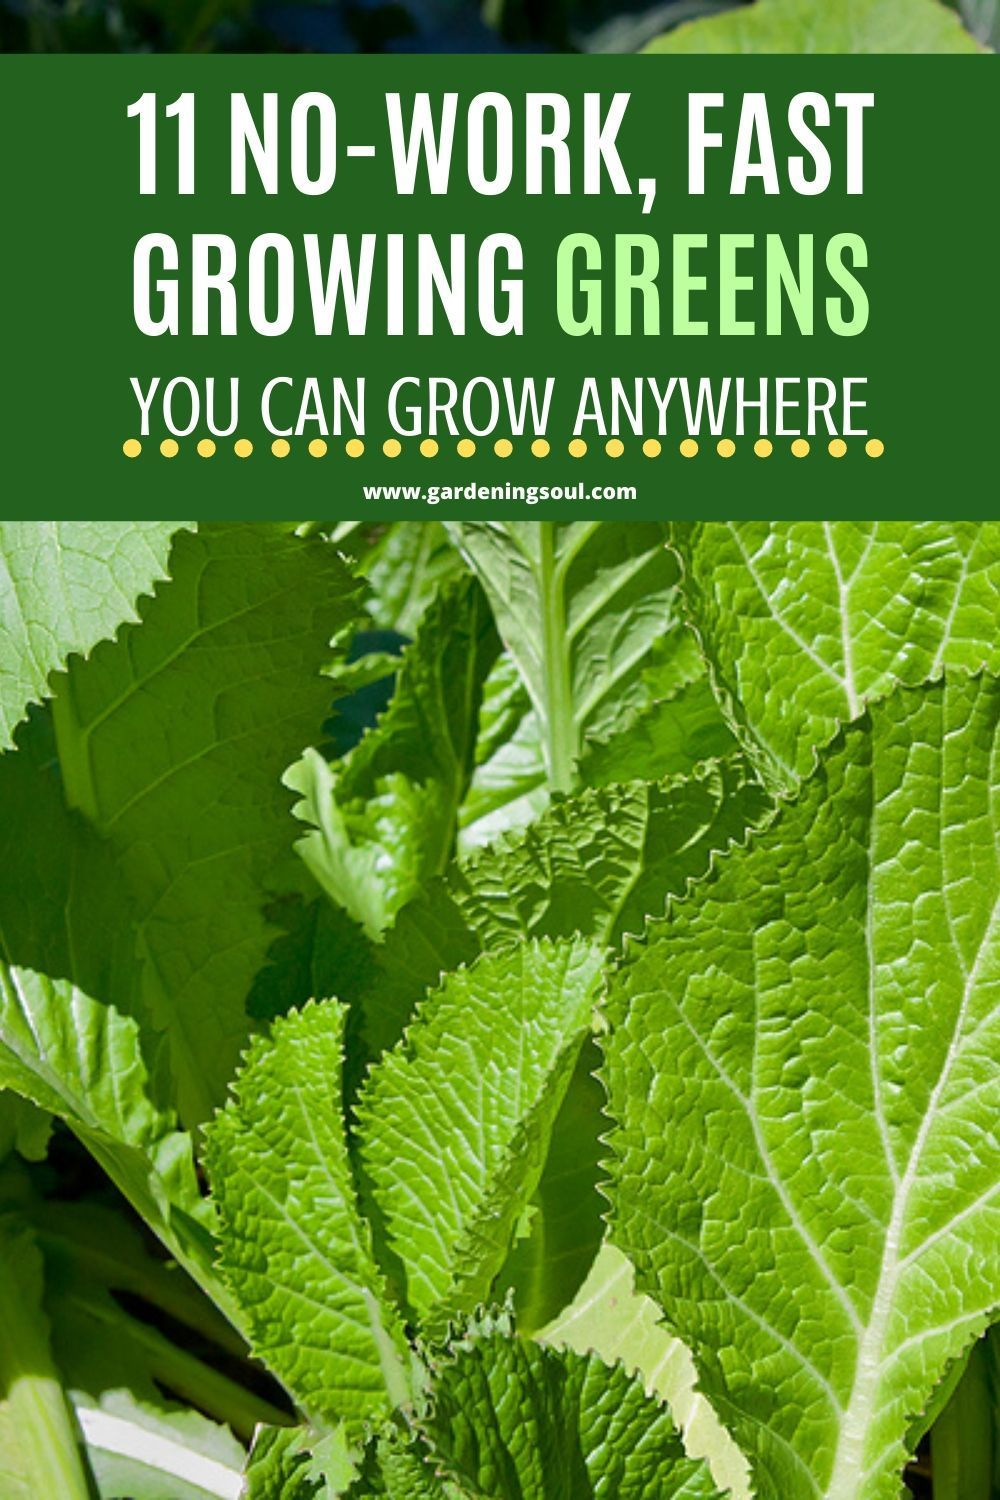 11 No-Work, Fast Growing Greens You Can Grow Anywhere#fast #greens #grow #growing #nowork